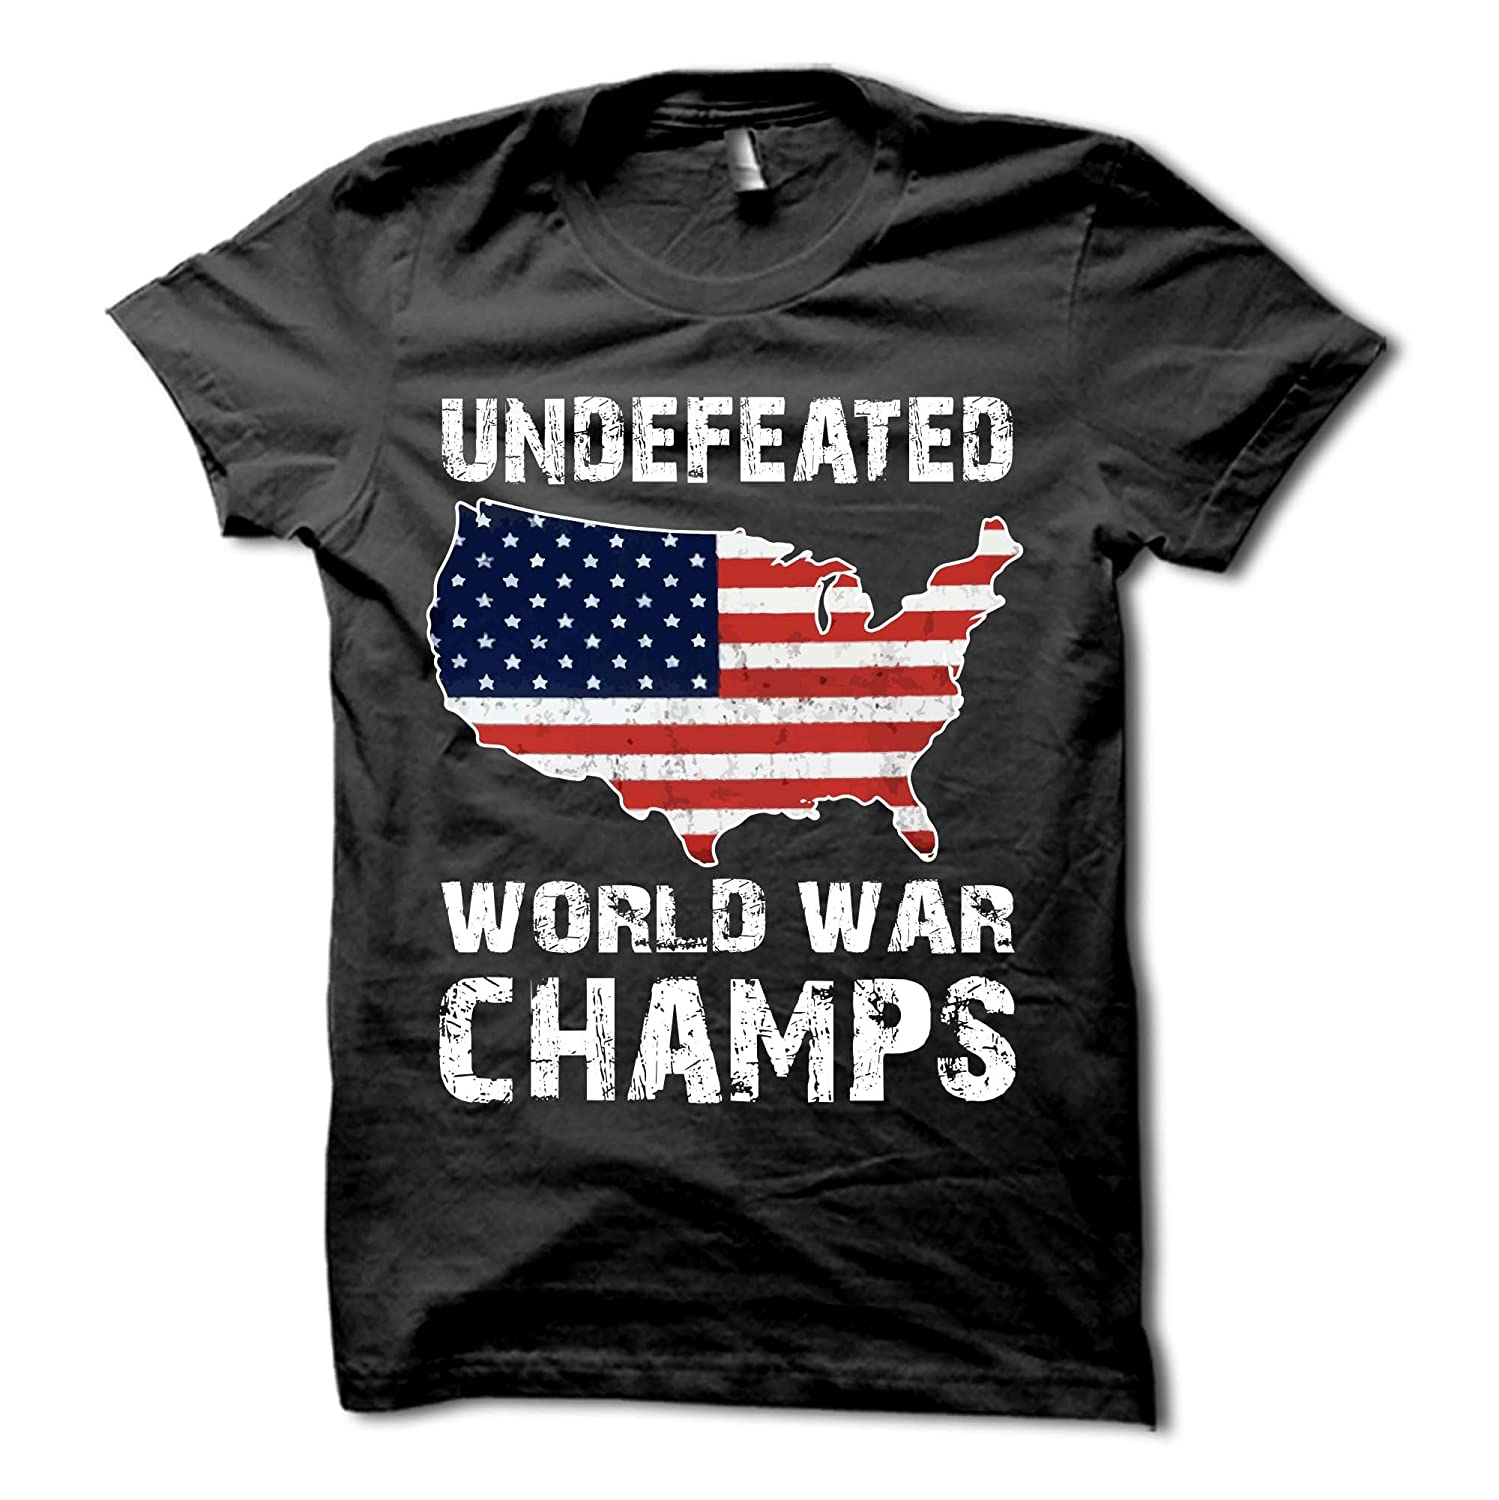 4d5a7755 Undefeated Back to Back World War Champs Shirt - USA T-Shirt - Patriotic Tee  | Amazon.com